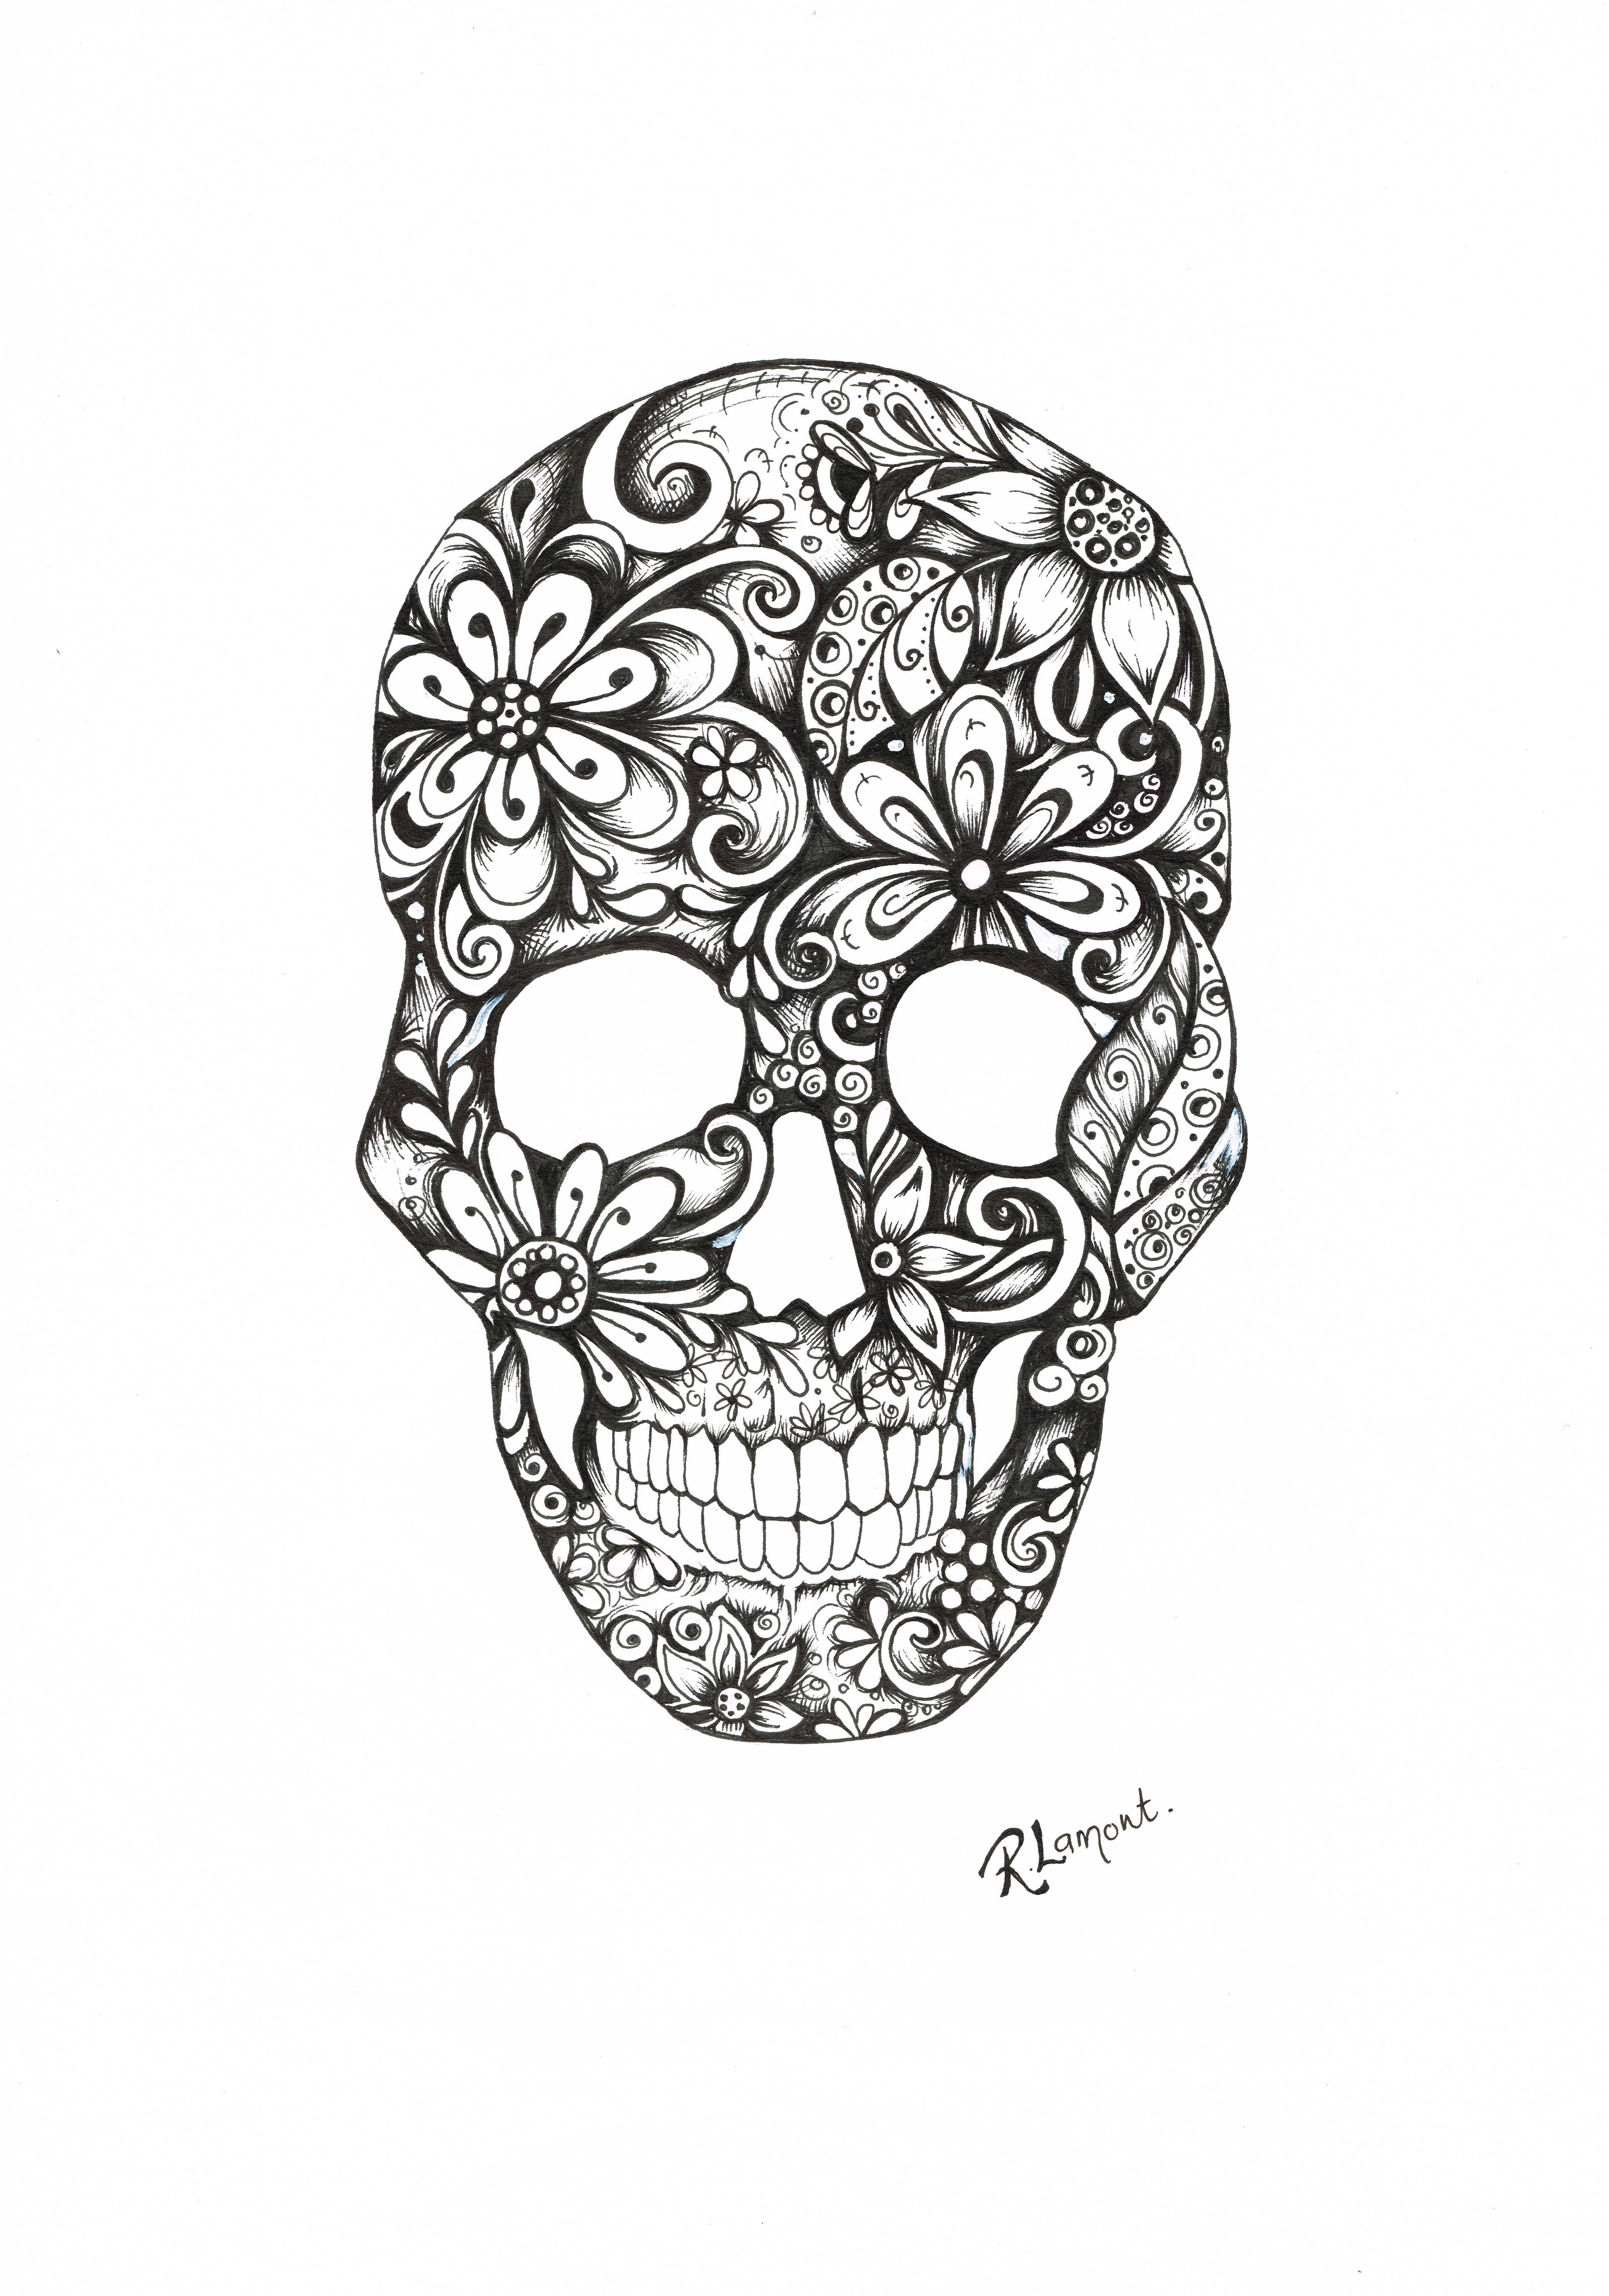 Fred - Floral Skull Illustration